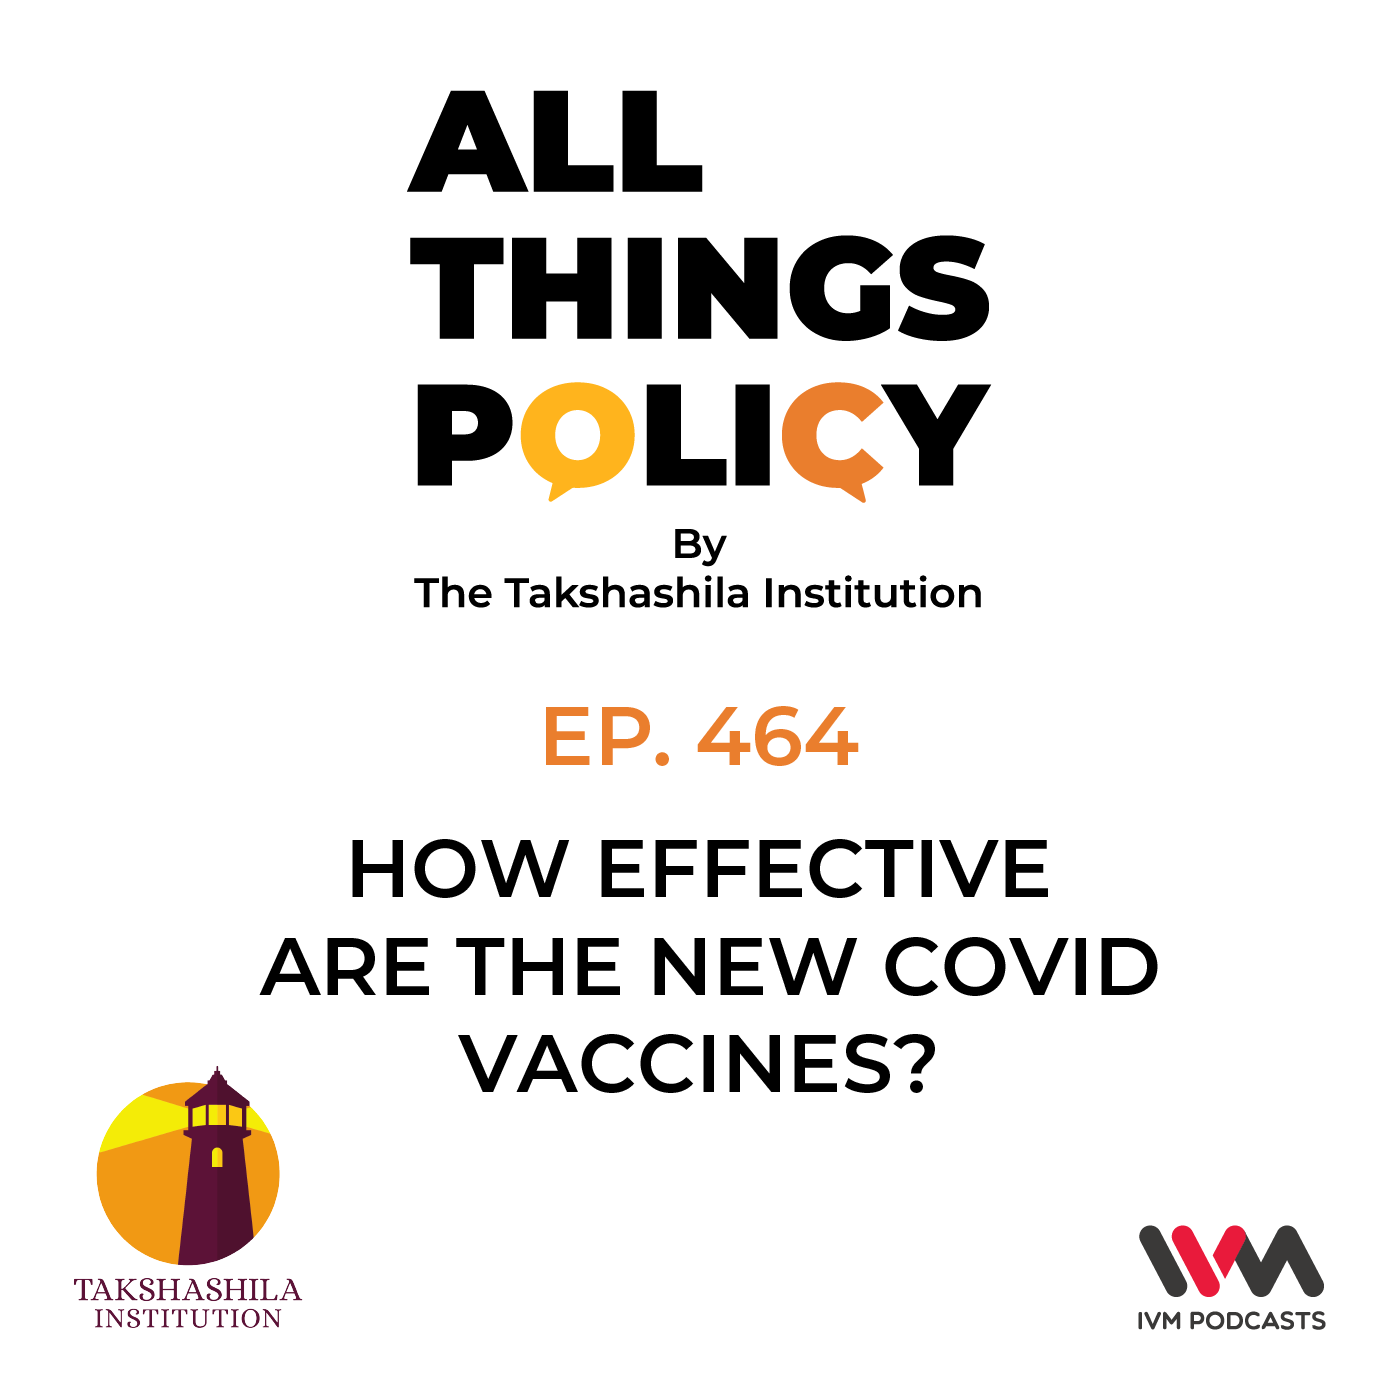 Ep. 464: How Effective Are the New COVID Vaccines?